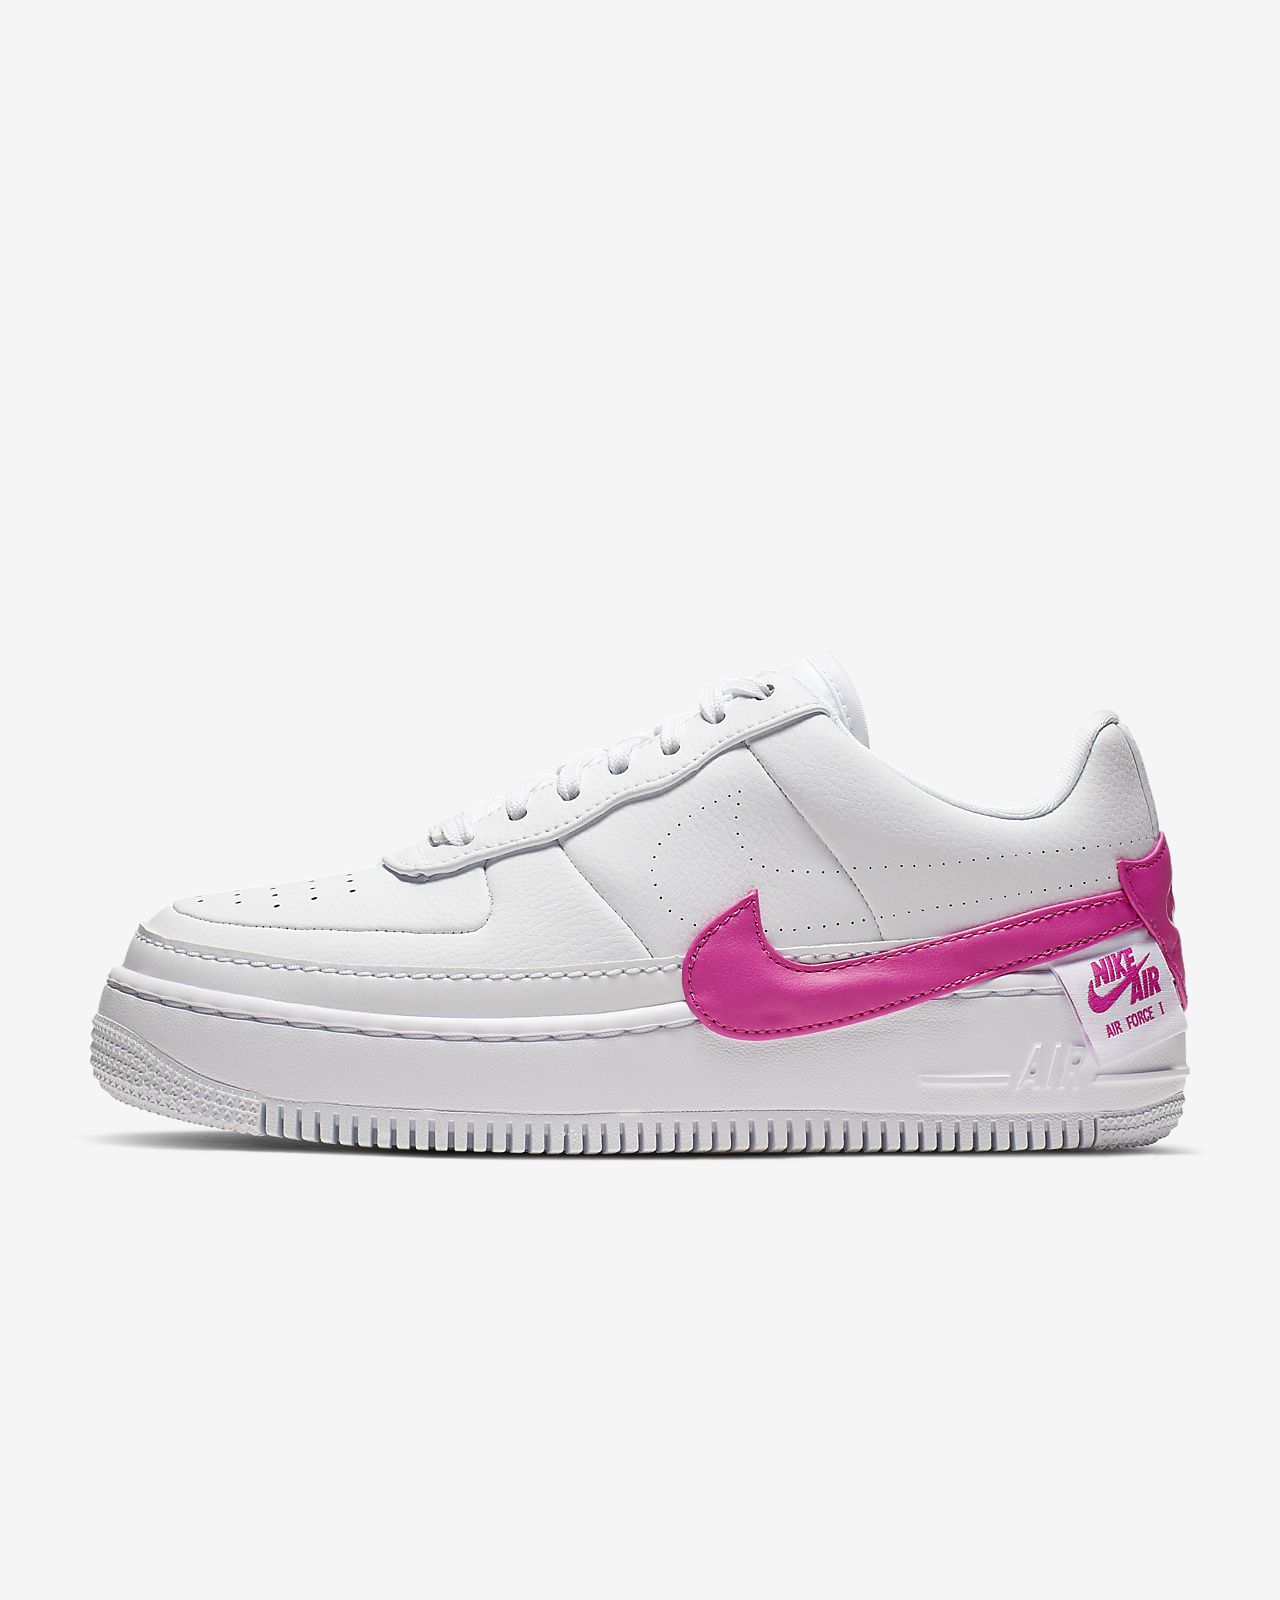 077a58ecabdb Nike Air Force 1 Jester XX Shoe. Nike.com RO